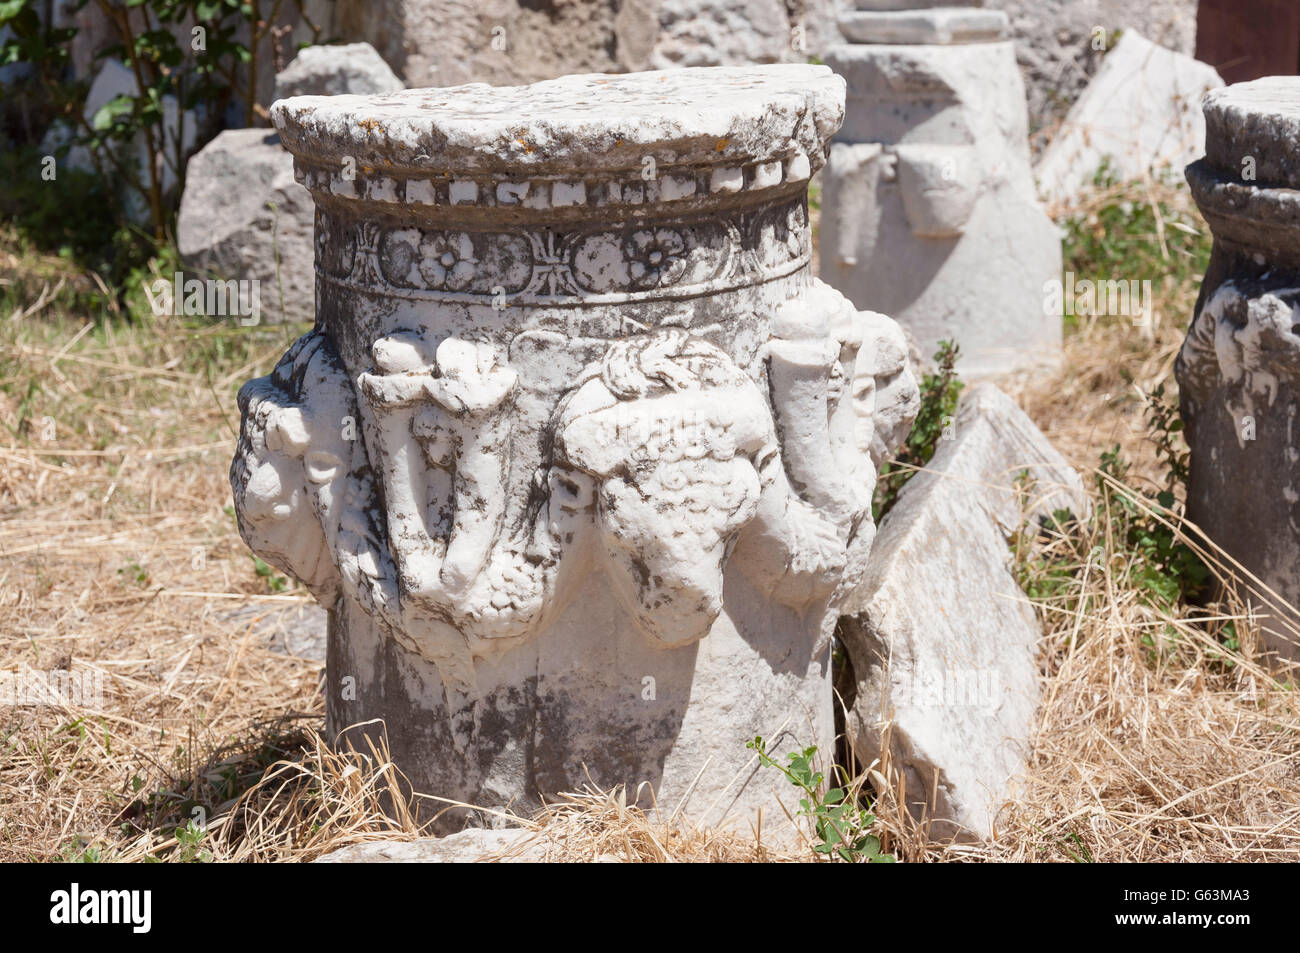 Sculptured marble plinth at The Fortress of Kos, Kos Town, Kos (Cos), The Dodecanese, South Aegean Region, Greece - Stock Image